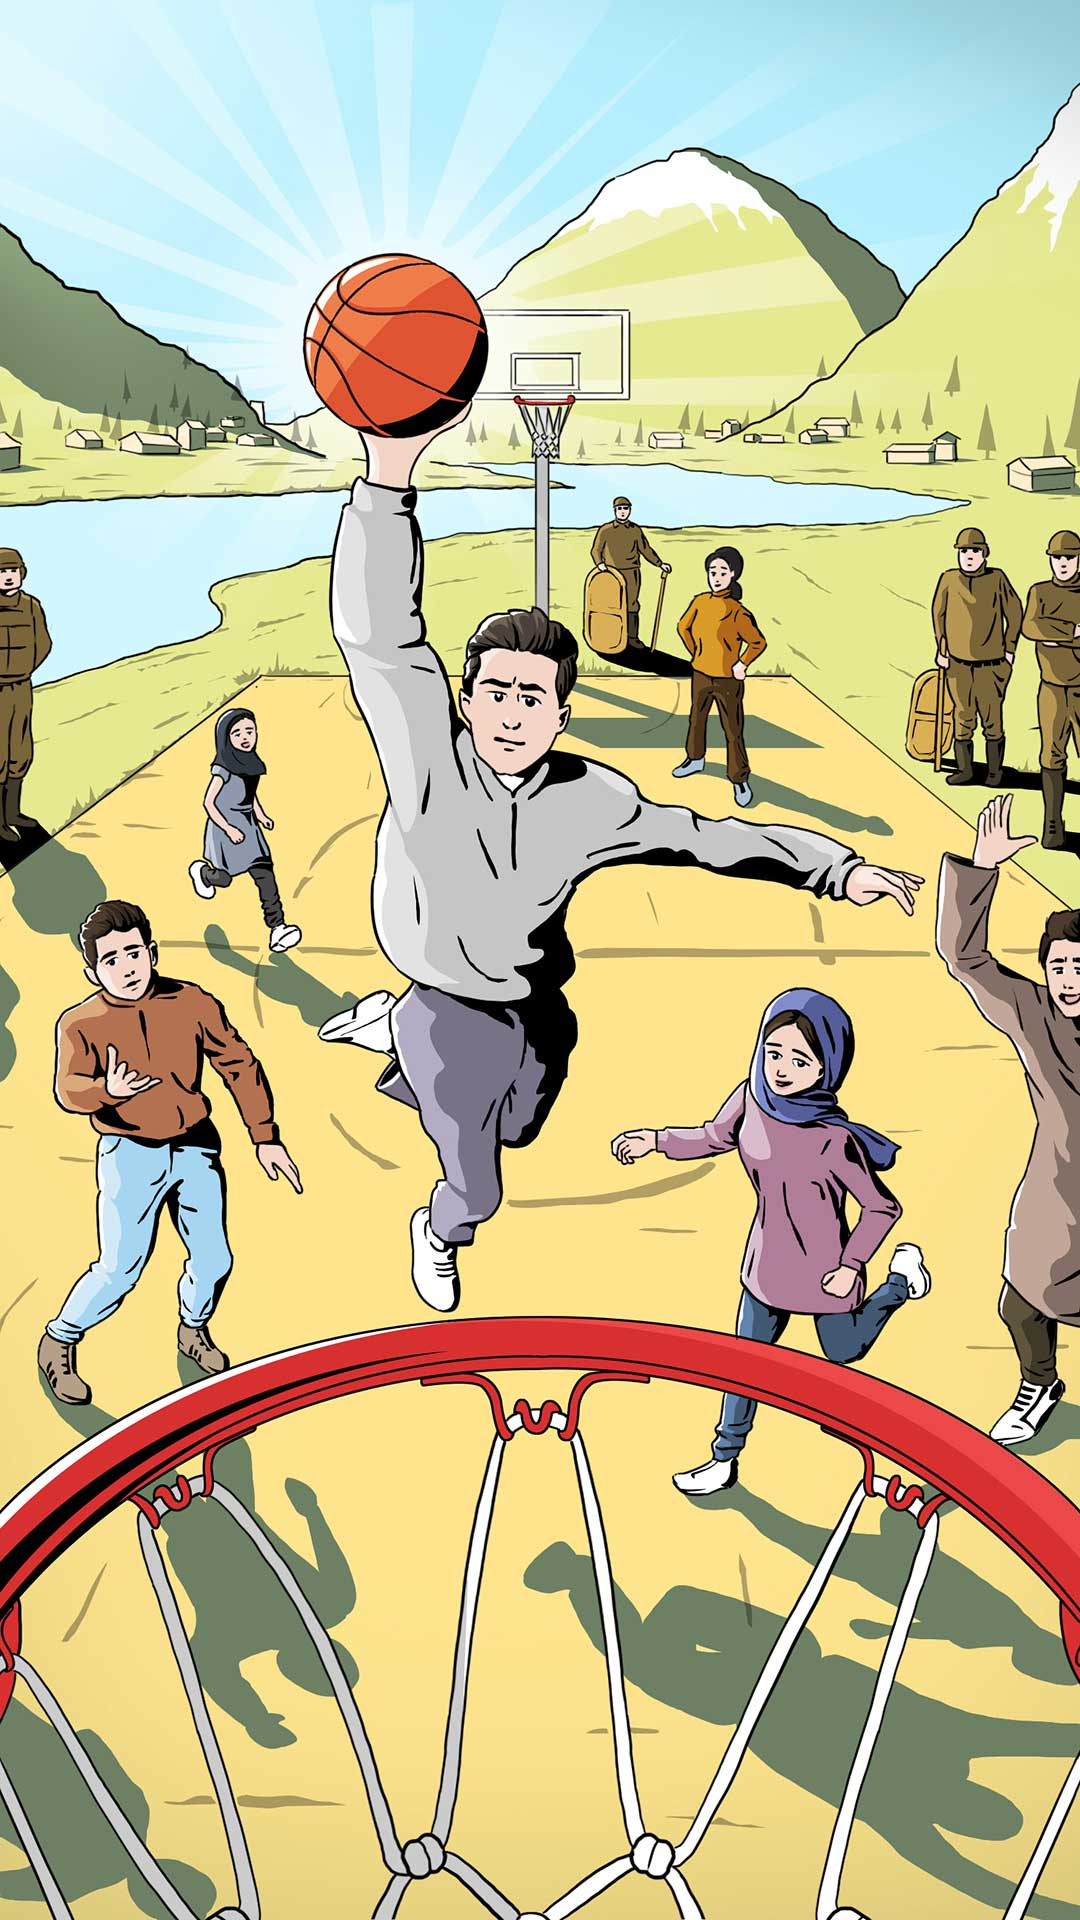 Balling in Kashmir - For the Love of the Game